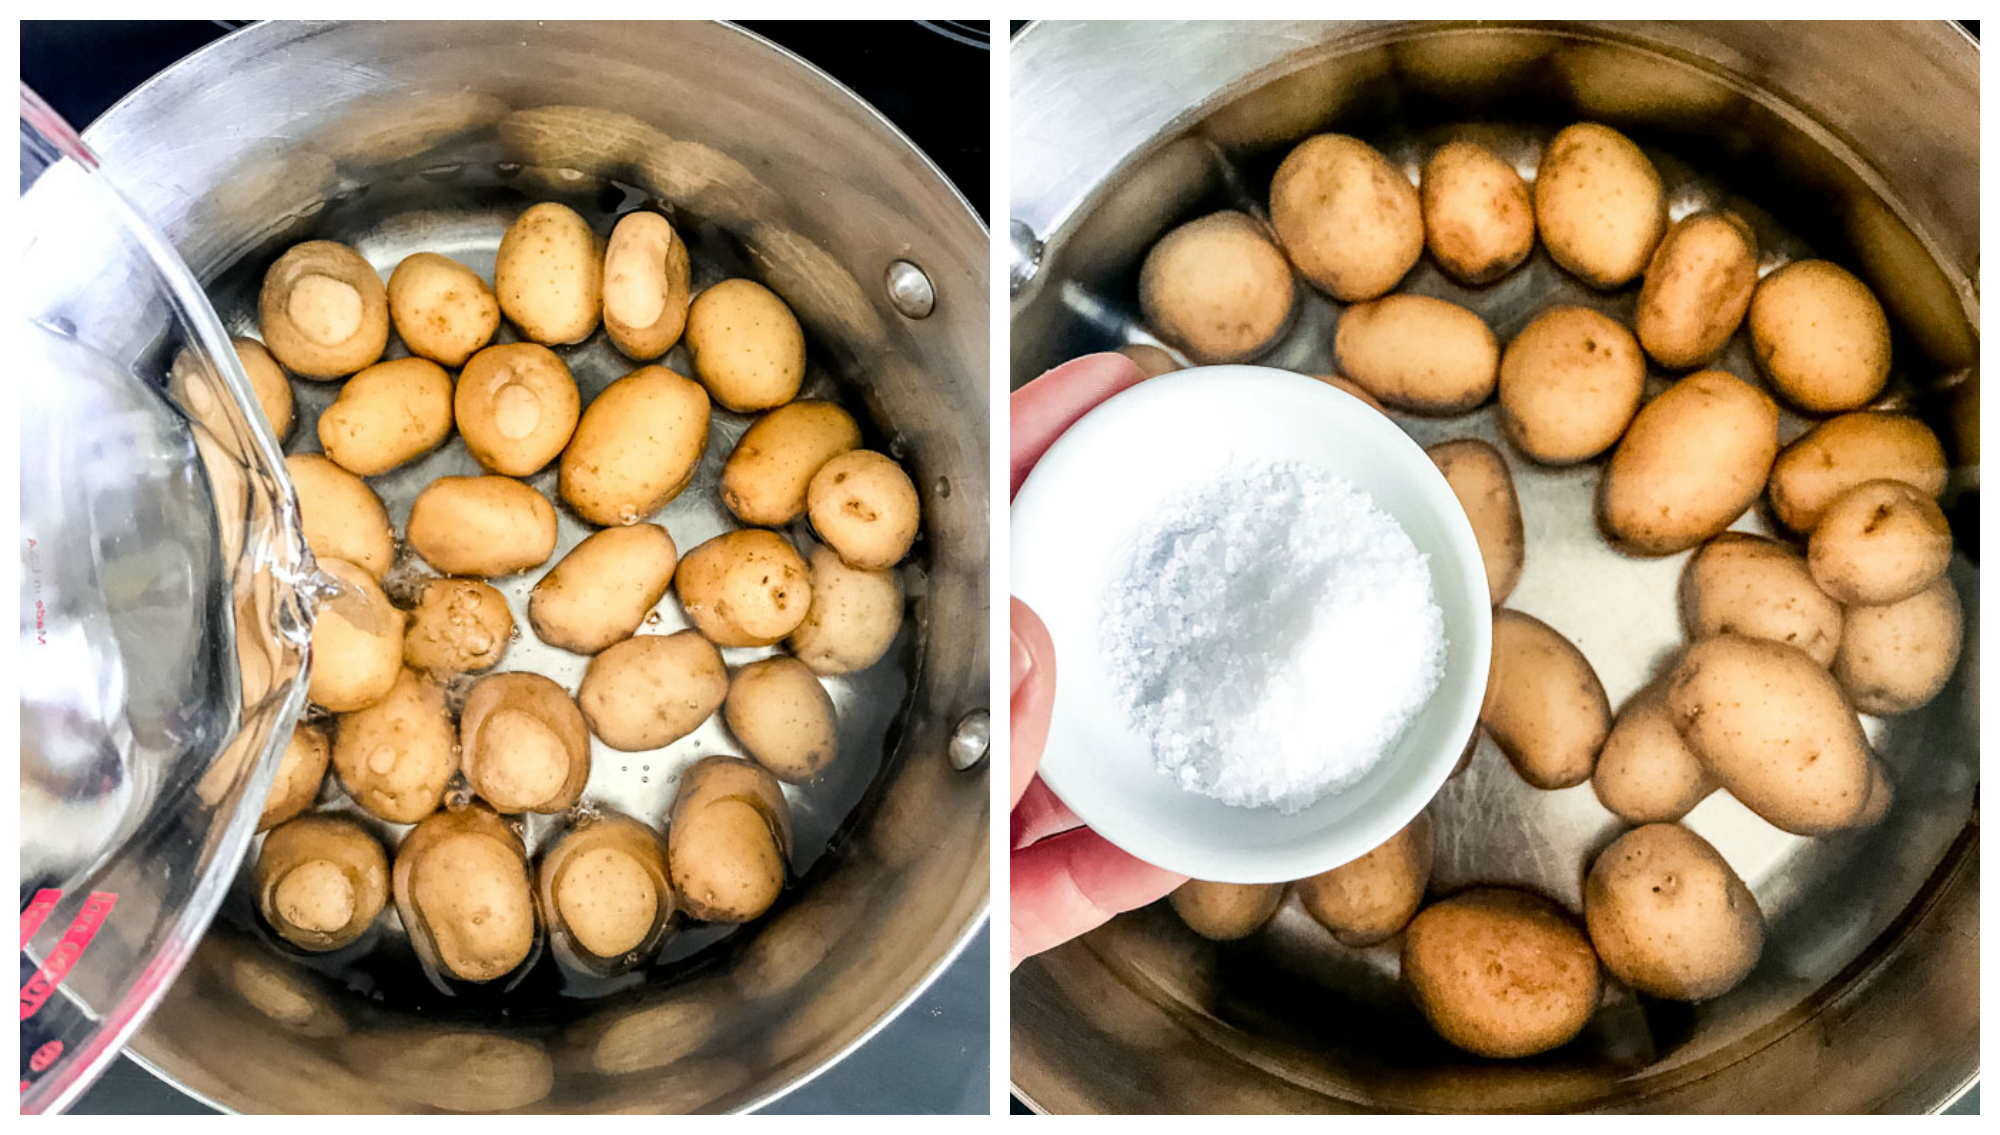 Baby potatoes in cooking pot